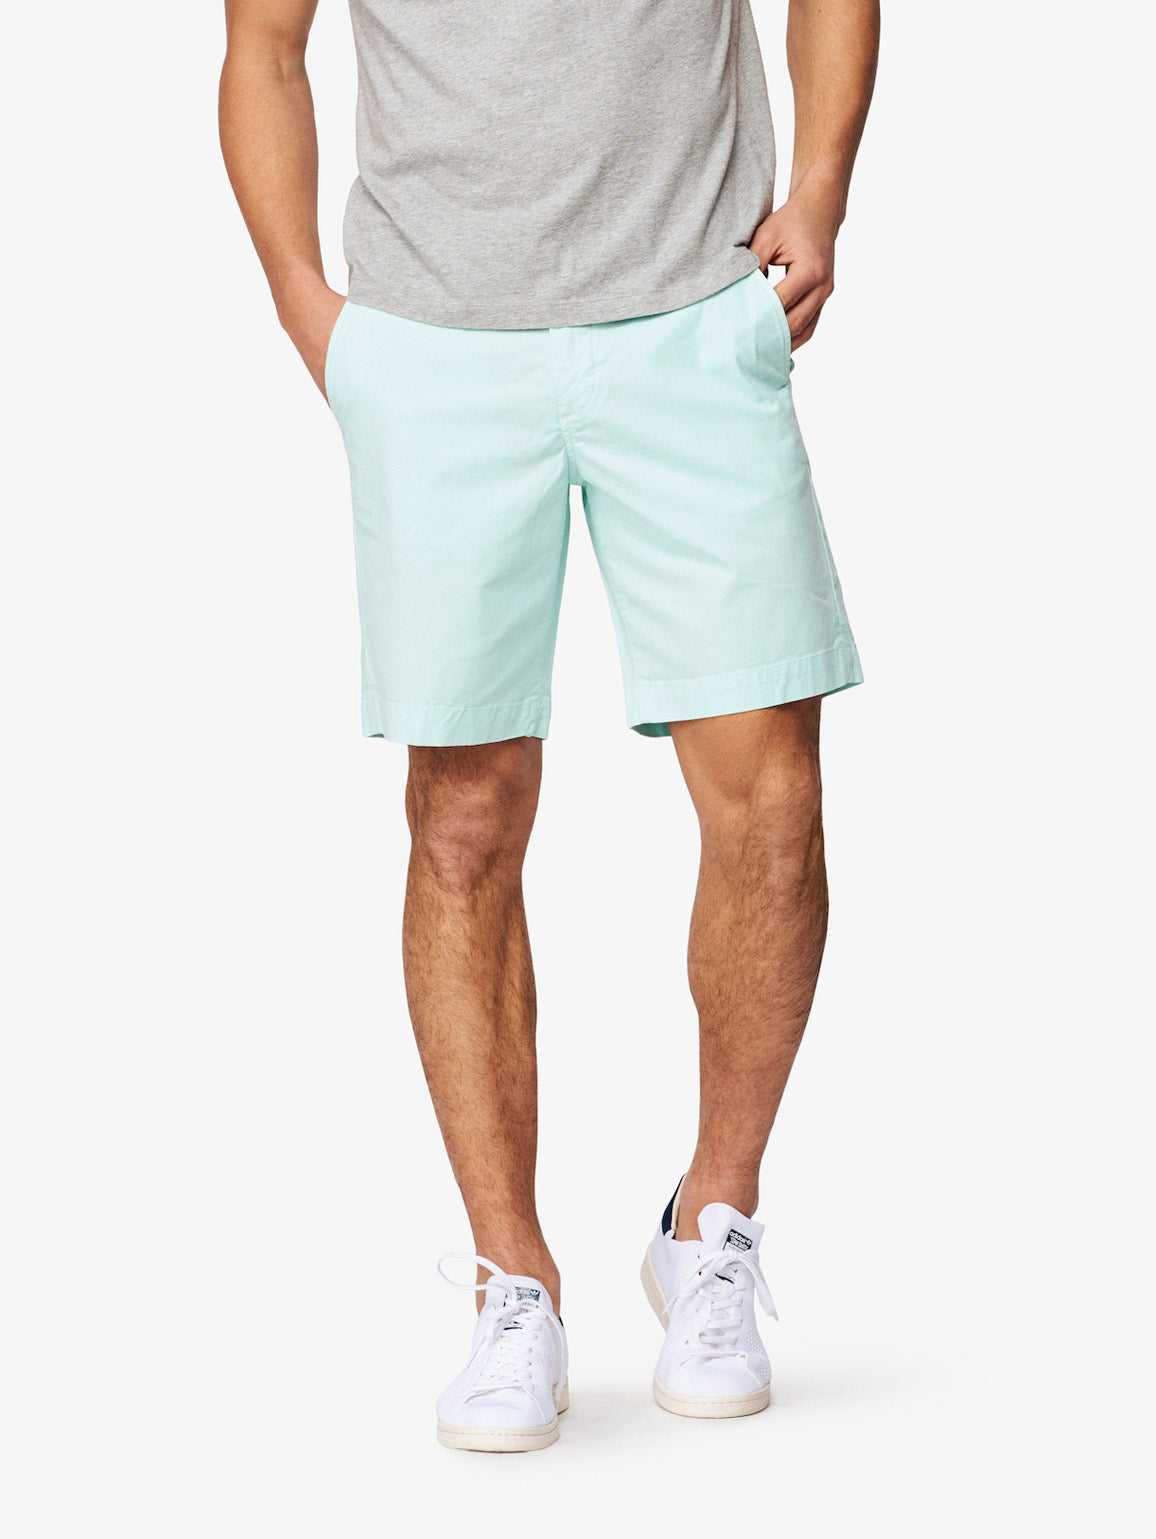 Men - Jake Chino Short | Perennial - DL1961